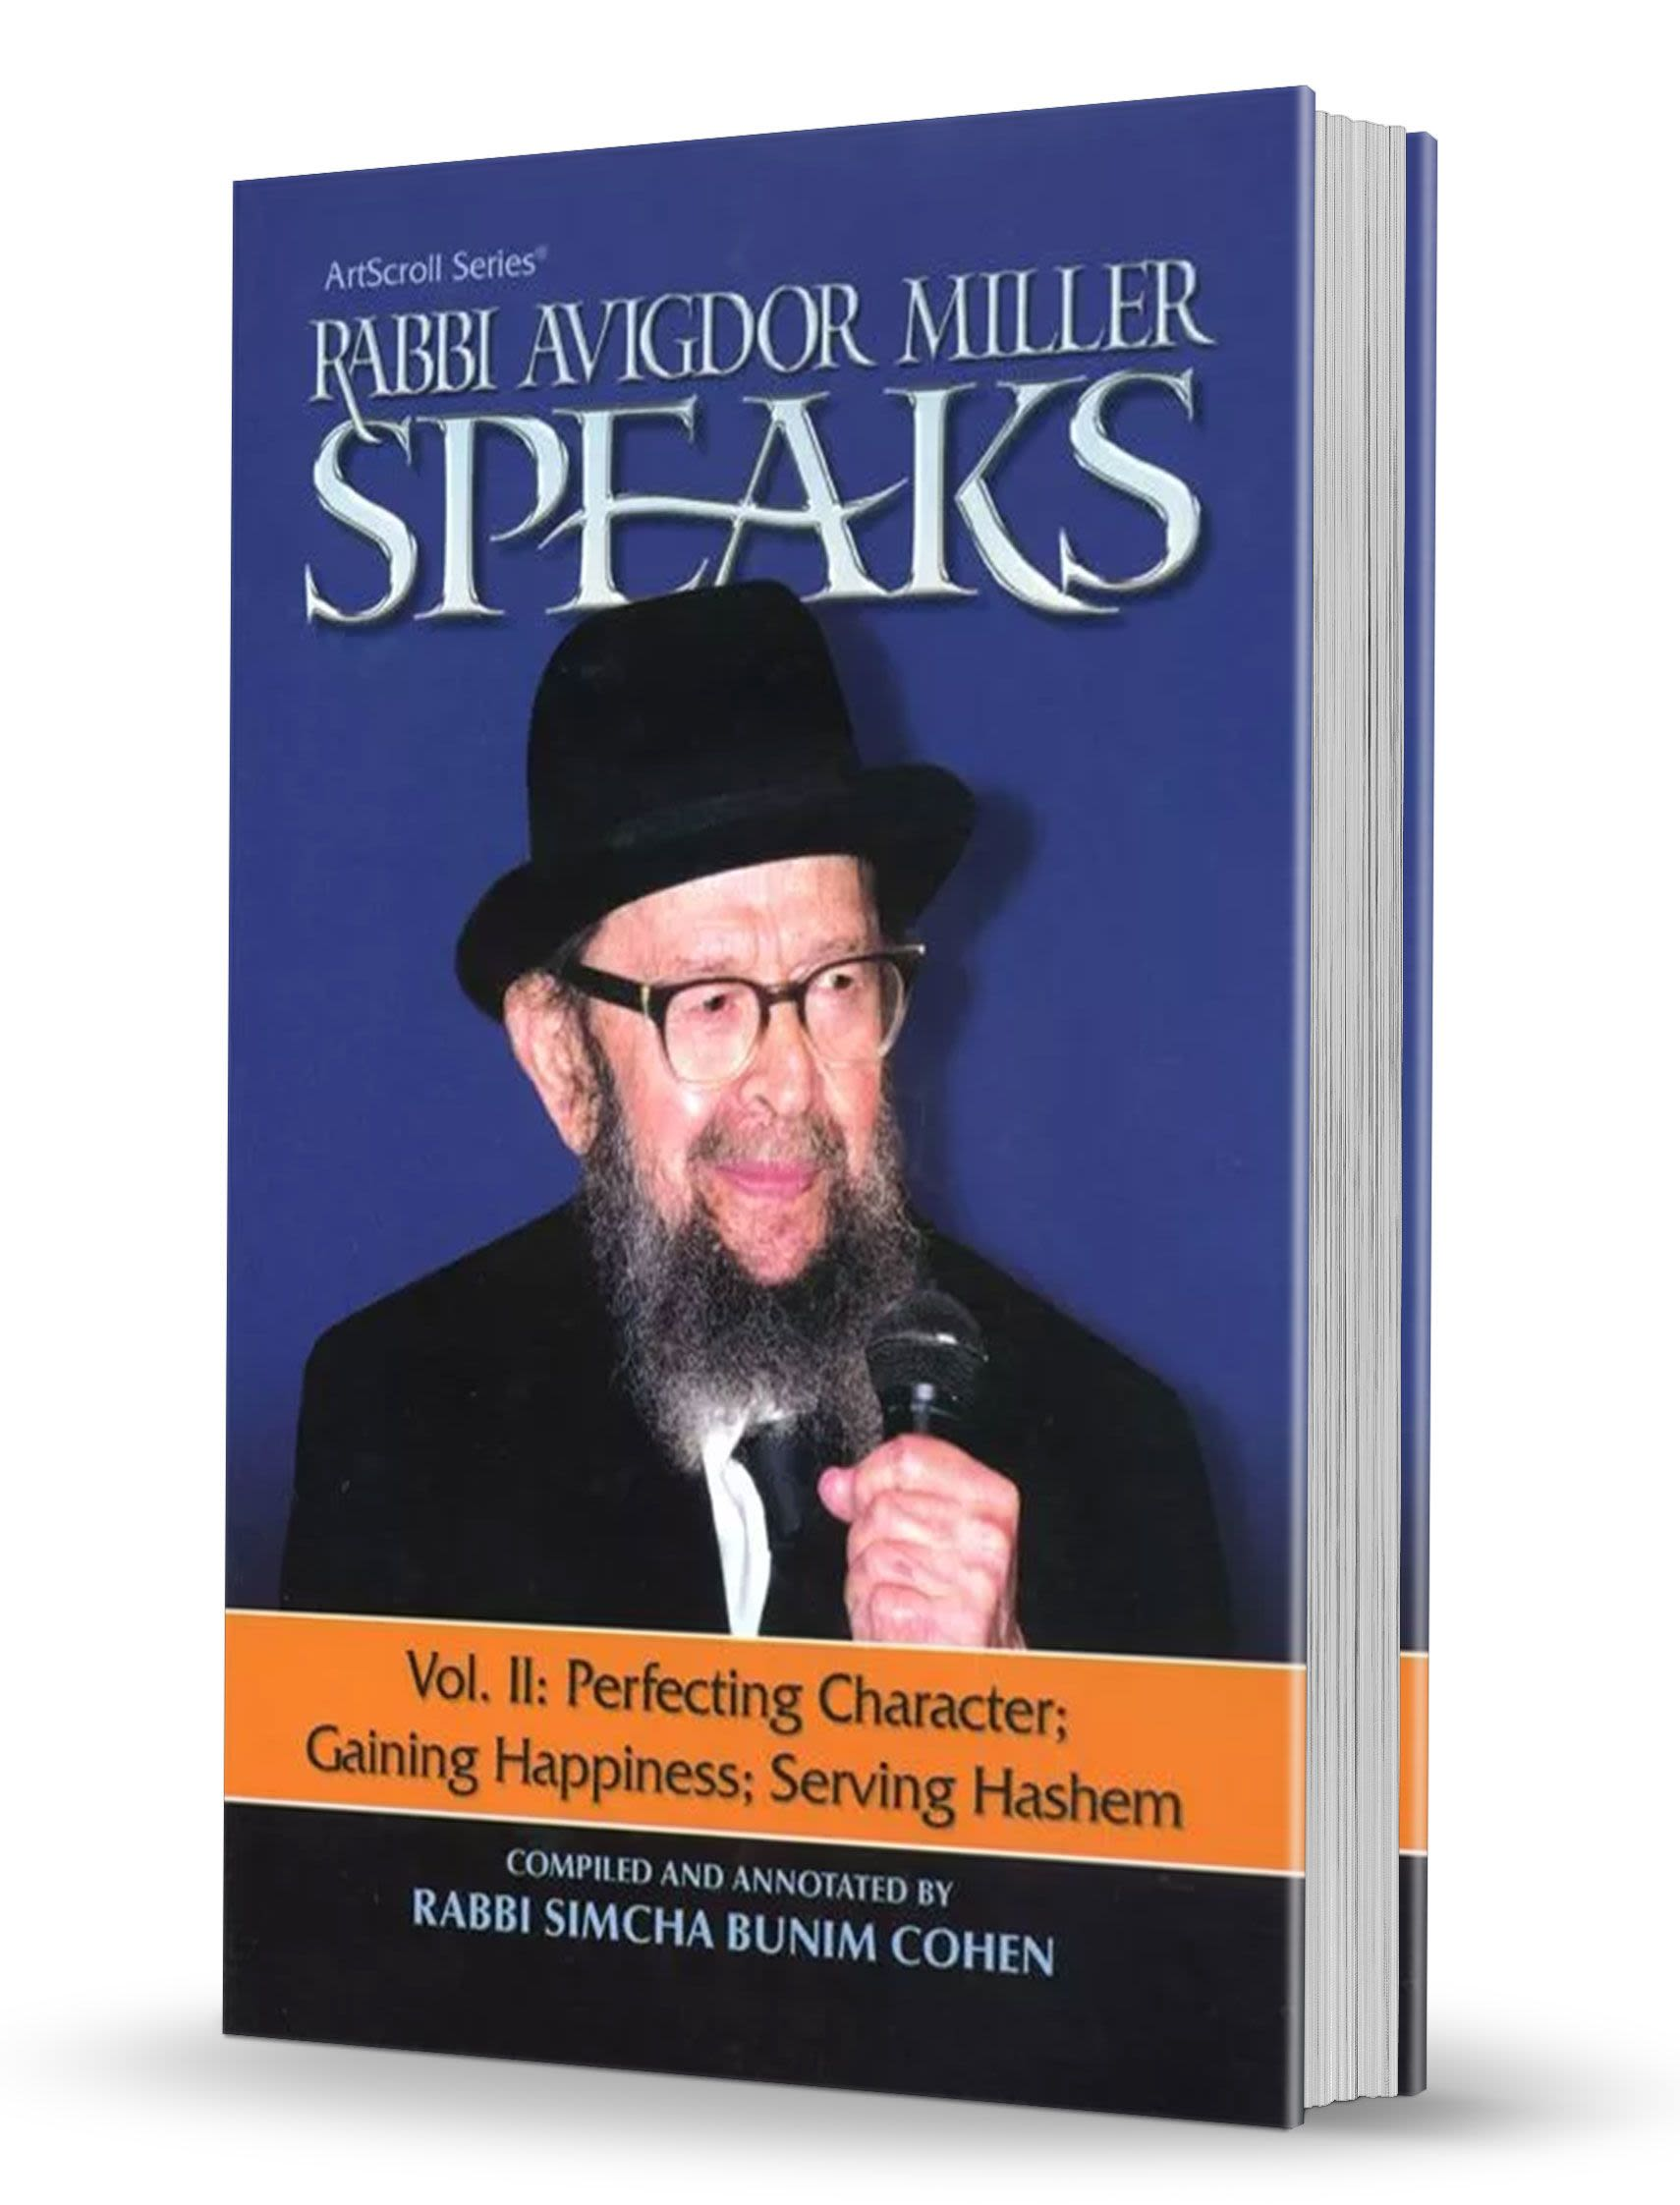 Rabbi Avigdor Miller Speaks: Vol. 2